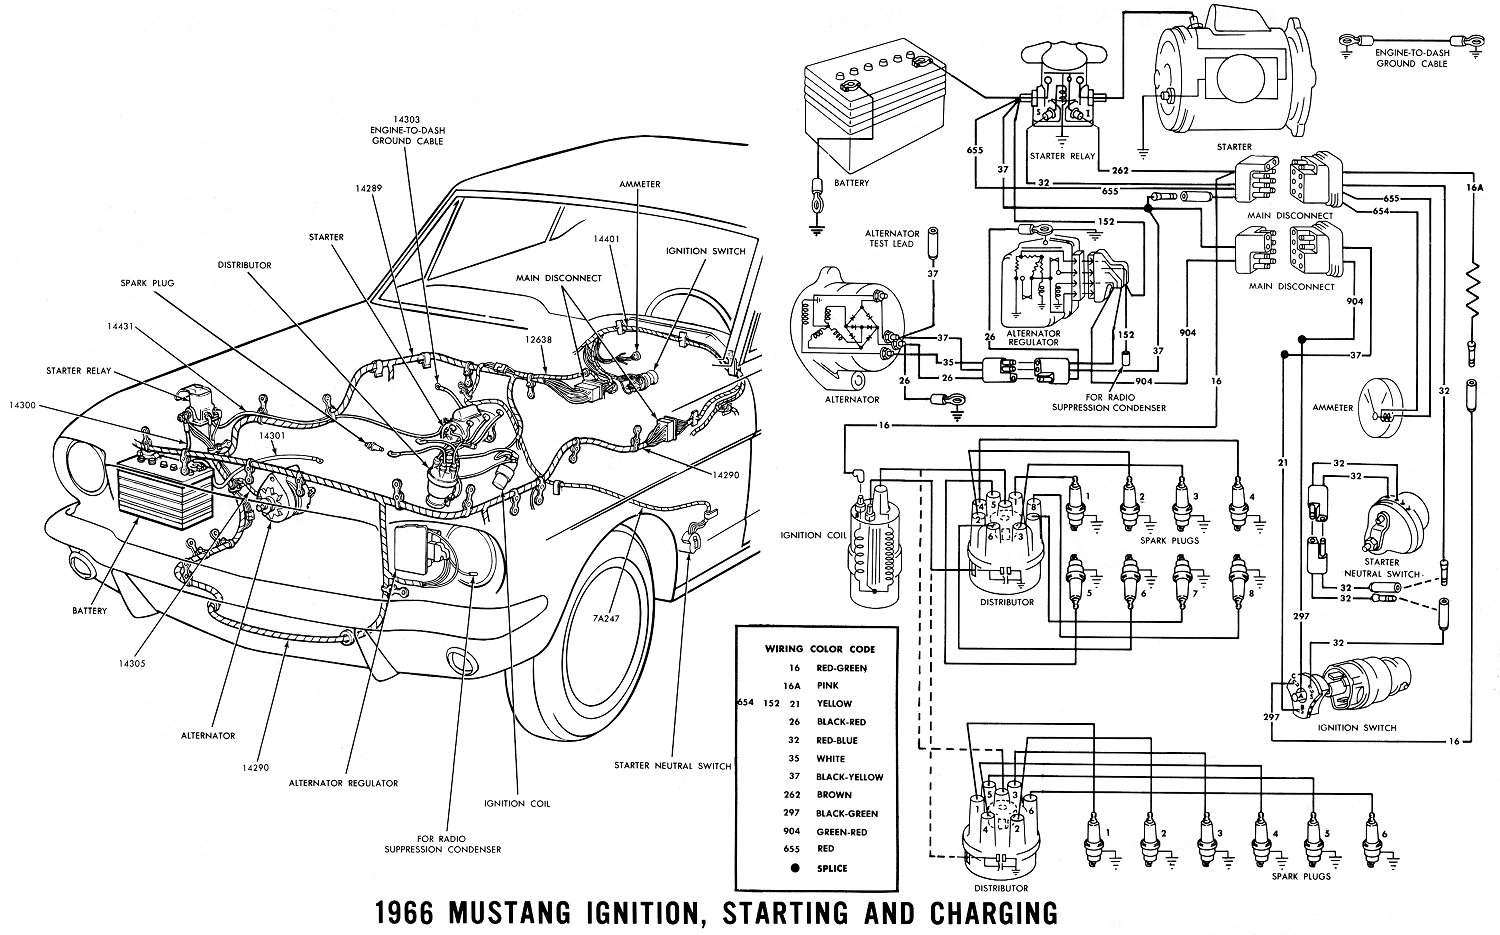 1966 Mustang Wiring Diagrams Average Joe Restoration Ford Start Diagram Ignition Starting And Charging